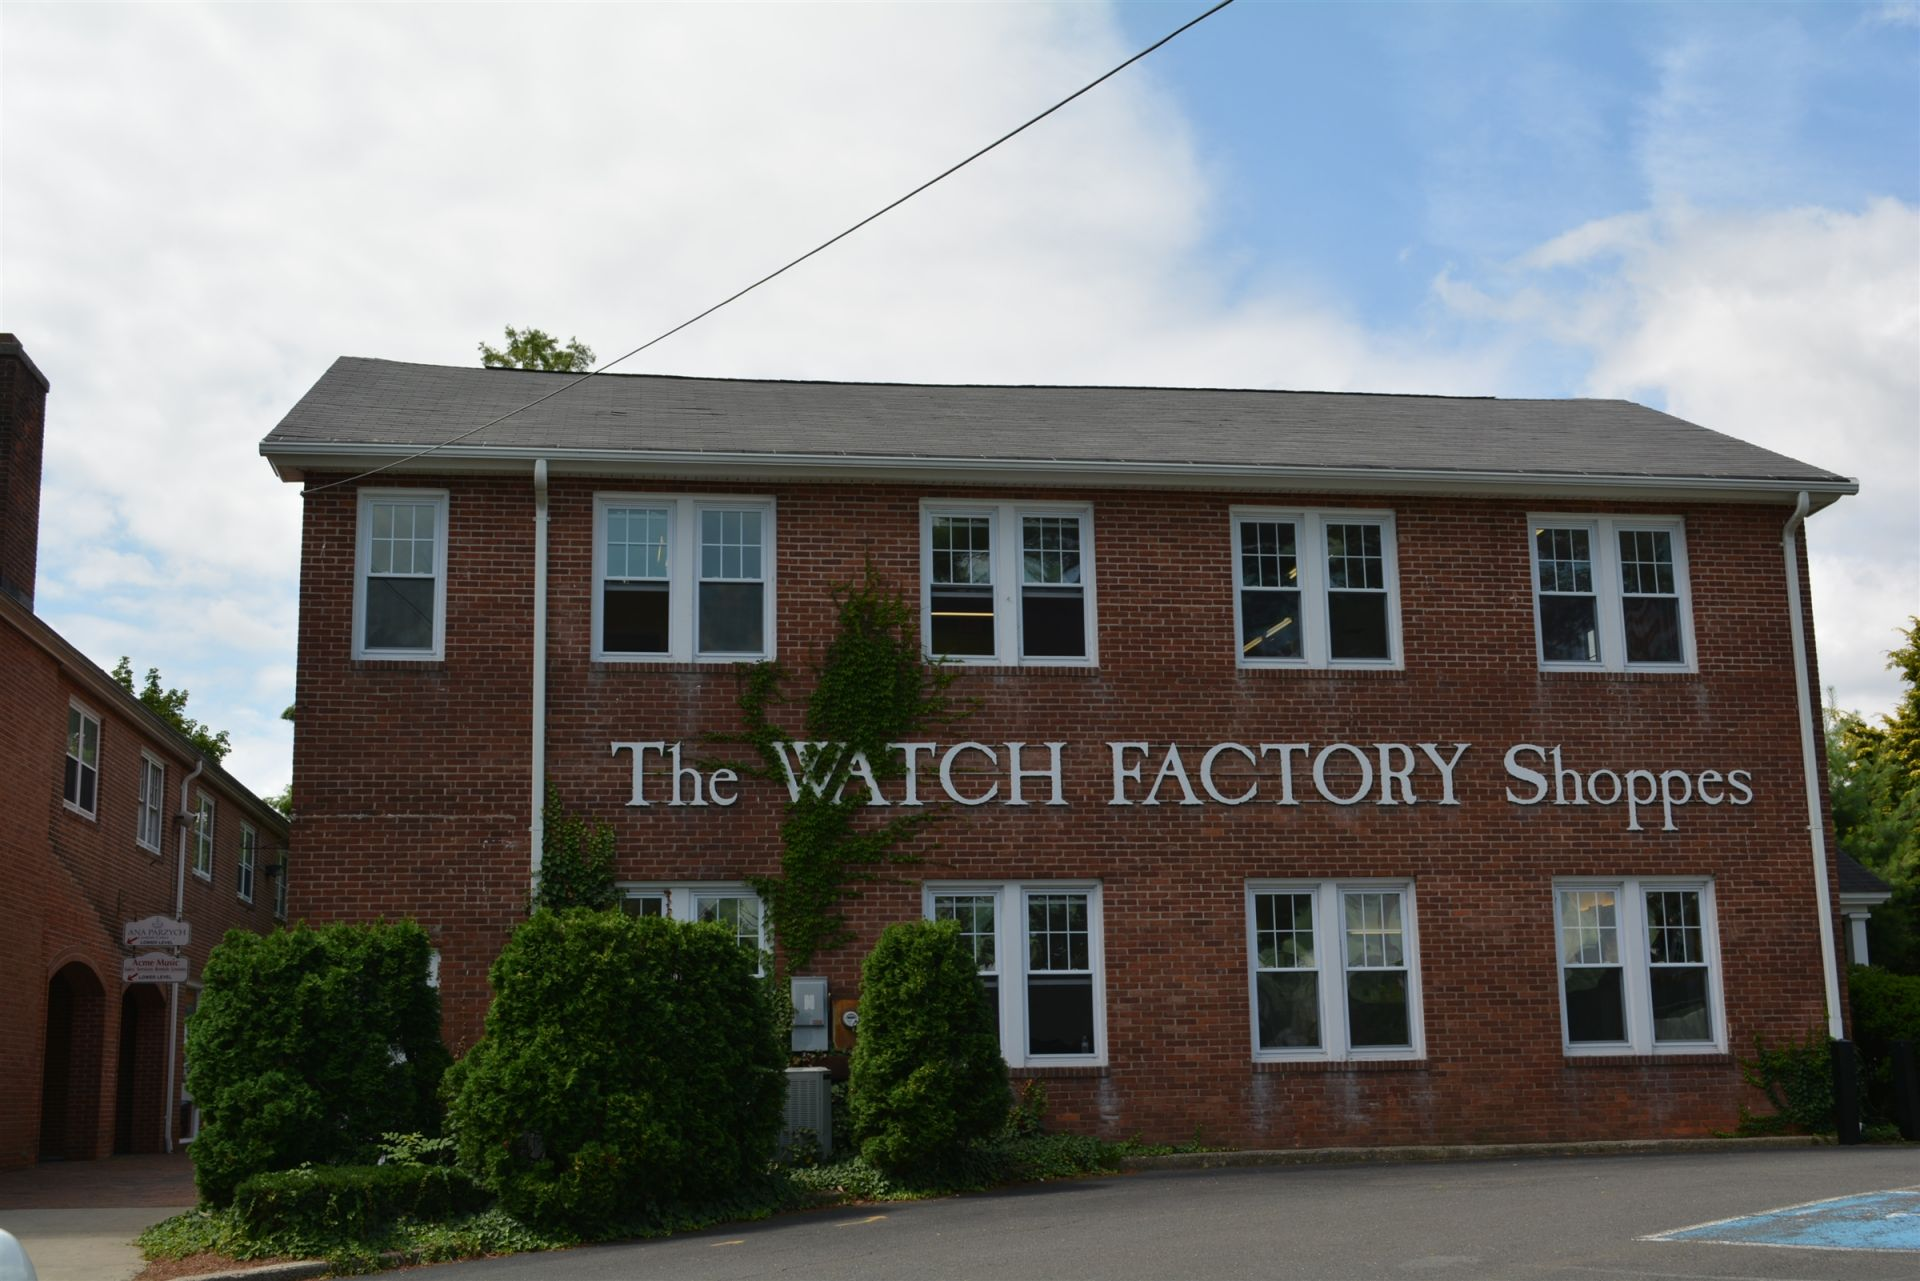 This former factory built in 1883 was once owned by Cheshire Academy and called Seabury Hall. Located across the street from the campus, it now offers retail and dining options.